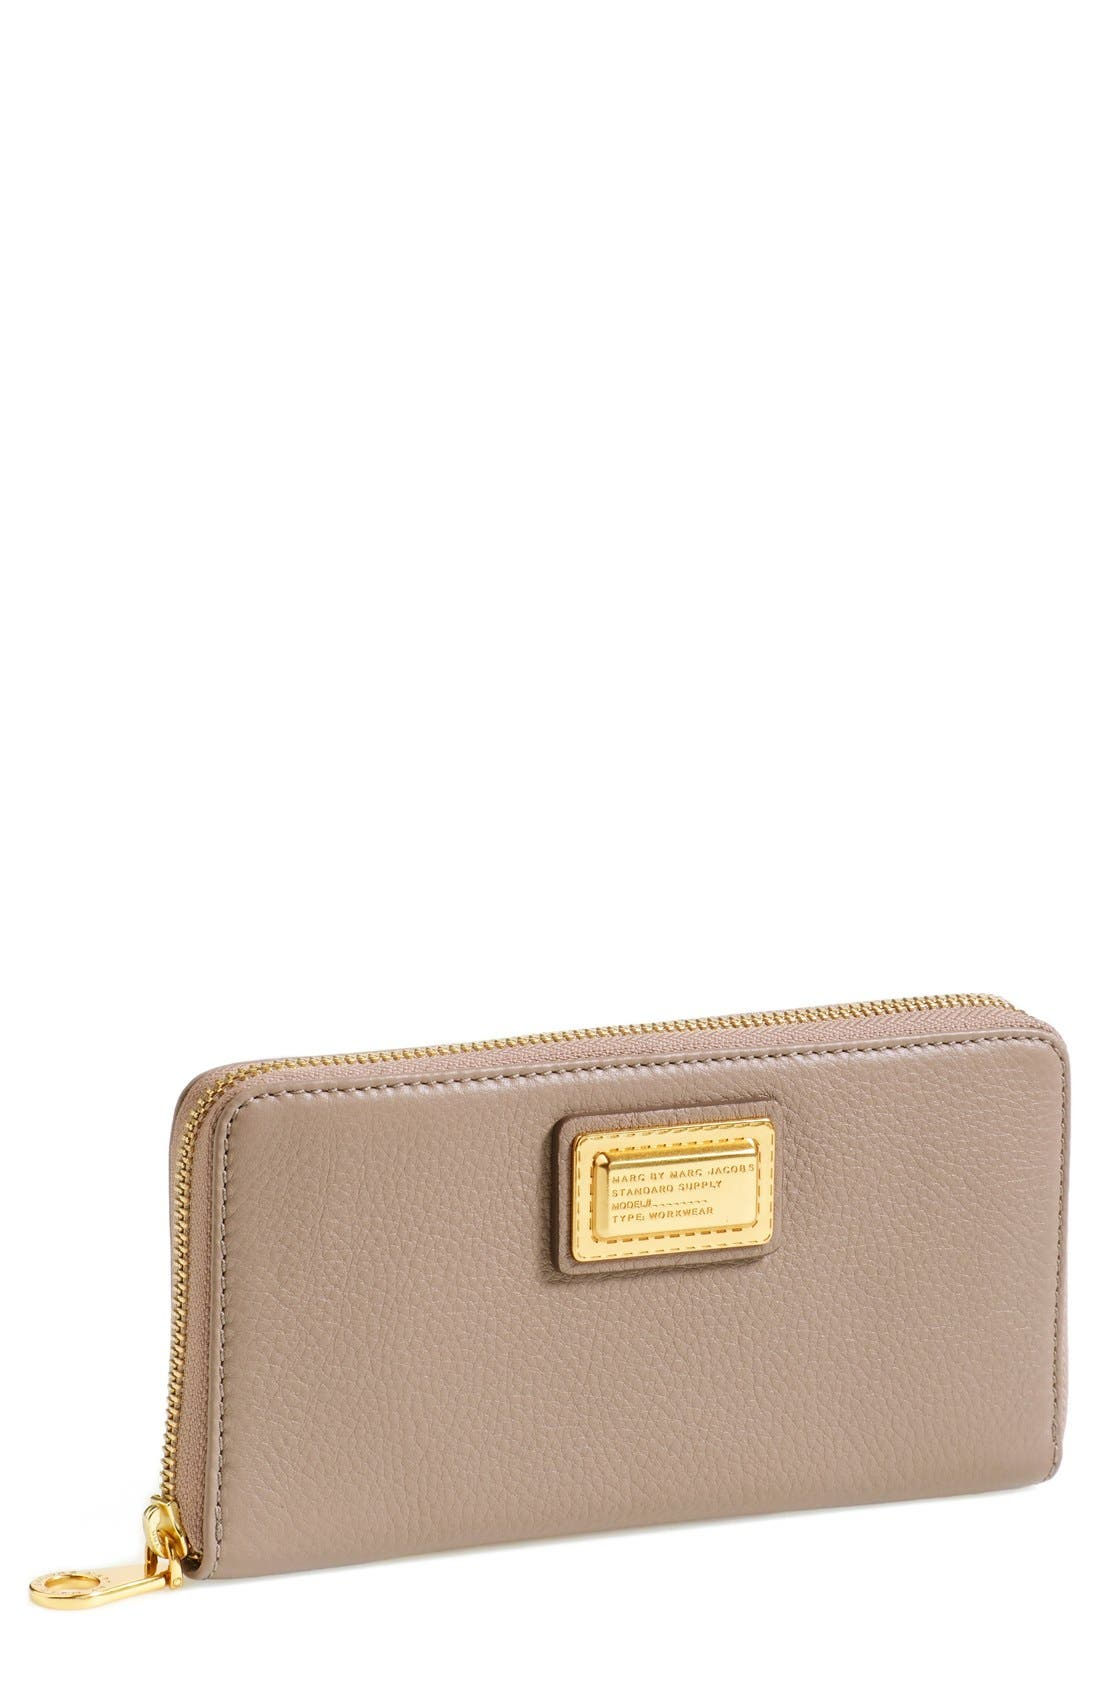 Main Image - MARC BY MARC JACOBS 'Vertical Zippy' Wallet